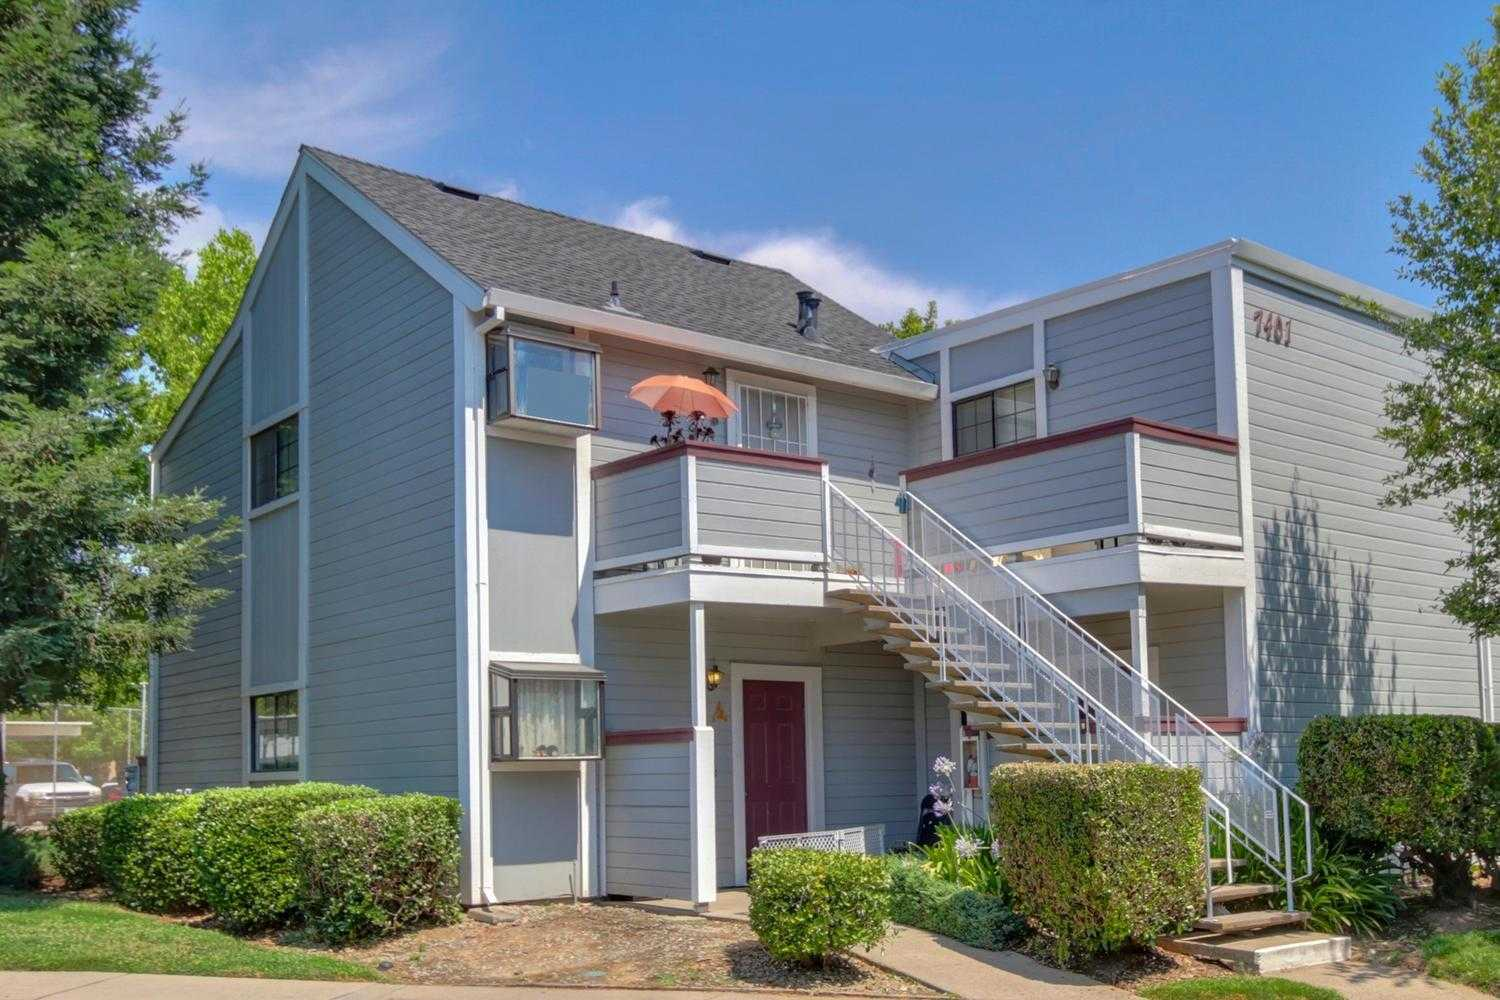 $180,000 - 2Br/2Ba -  for Sale in Coventry Square, Citrus Heights